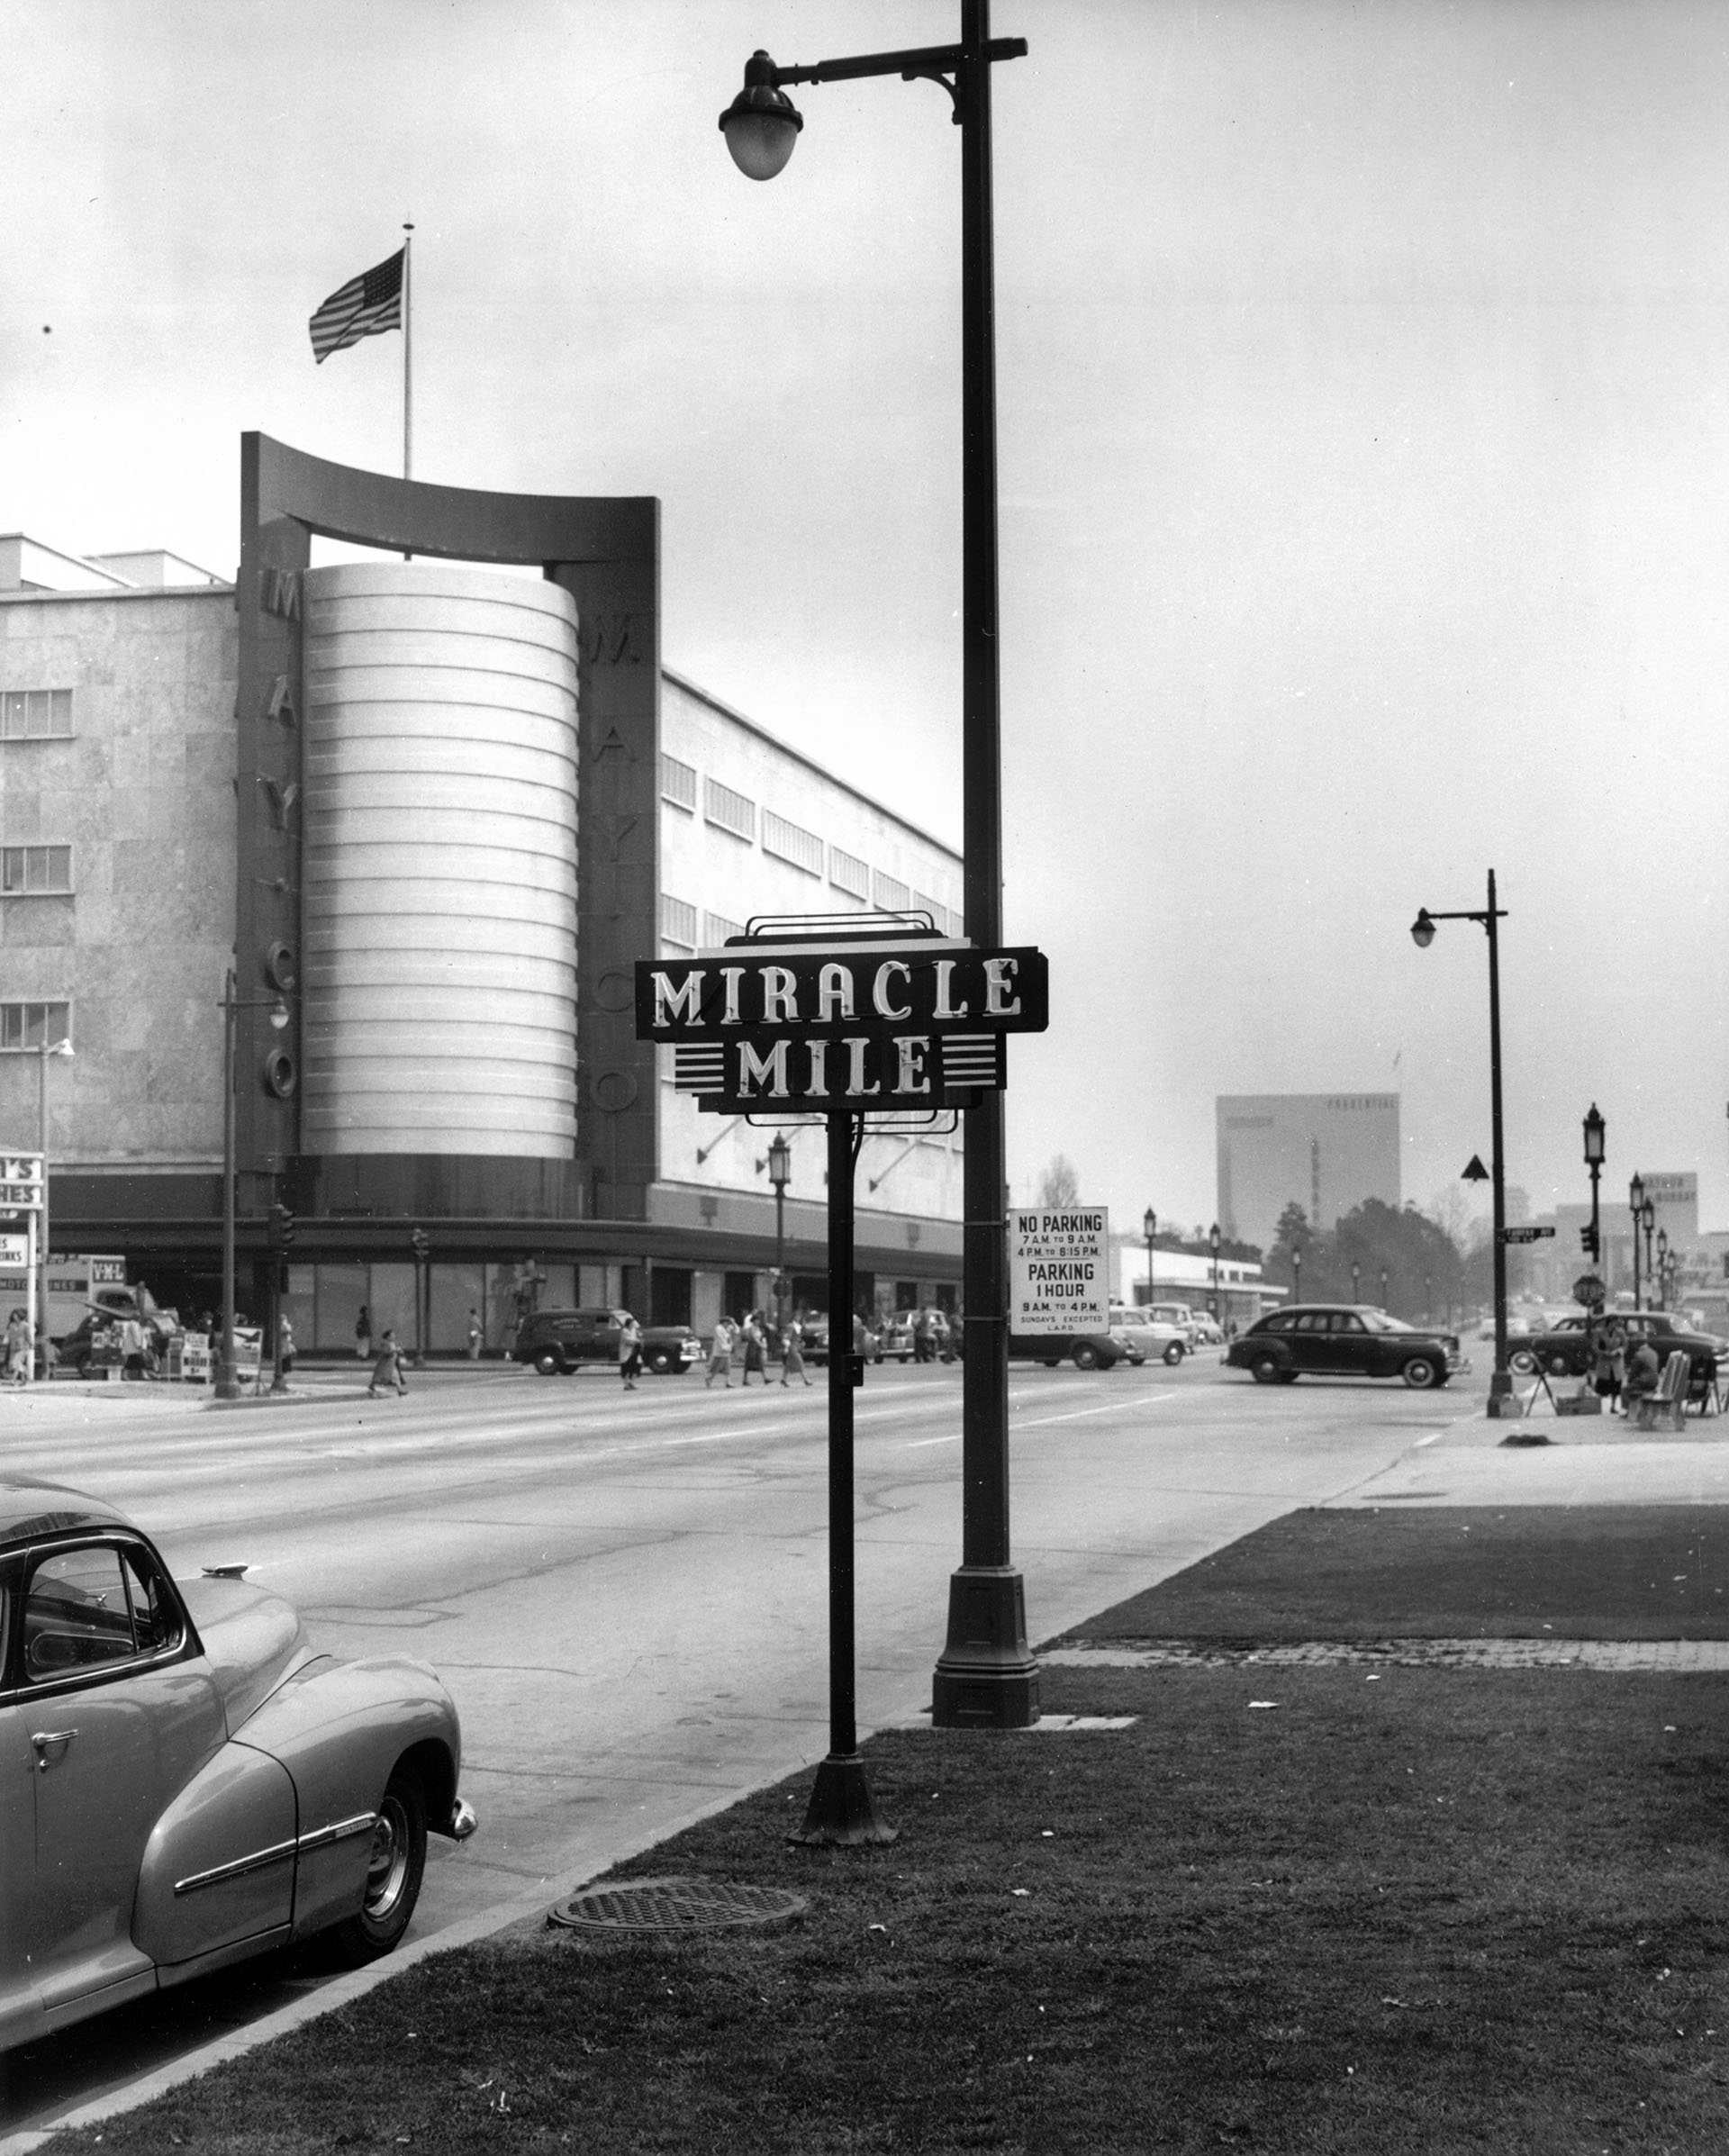 Circa 1940 view of the Miracle Mile sign on Wilshire Boulevard, with the May Company department story in the background. Courtesy of the Dick Whittington Photography Collection, USC Libraries.